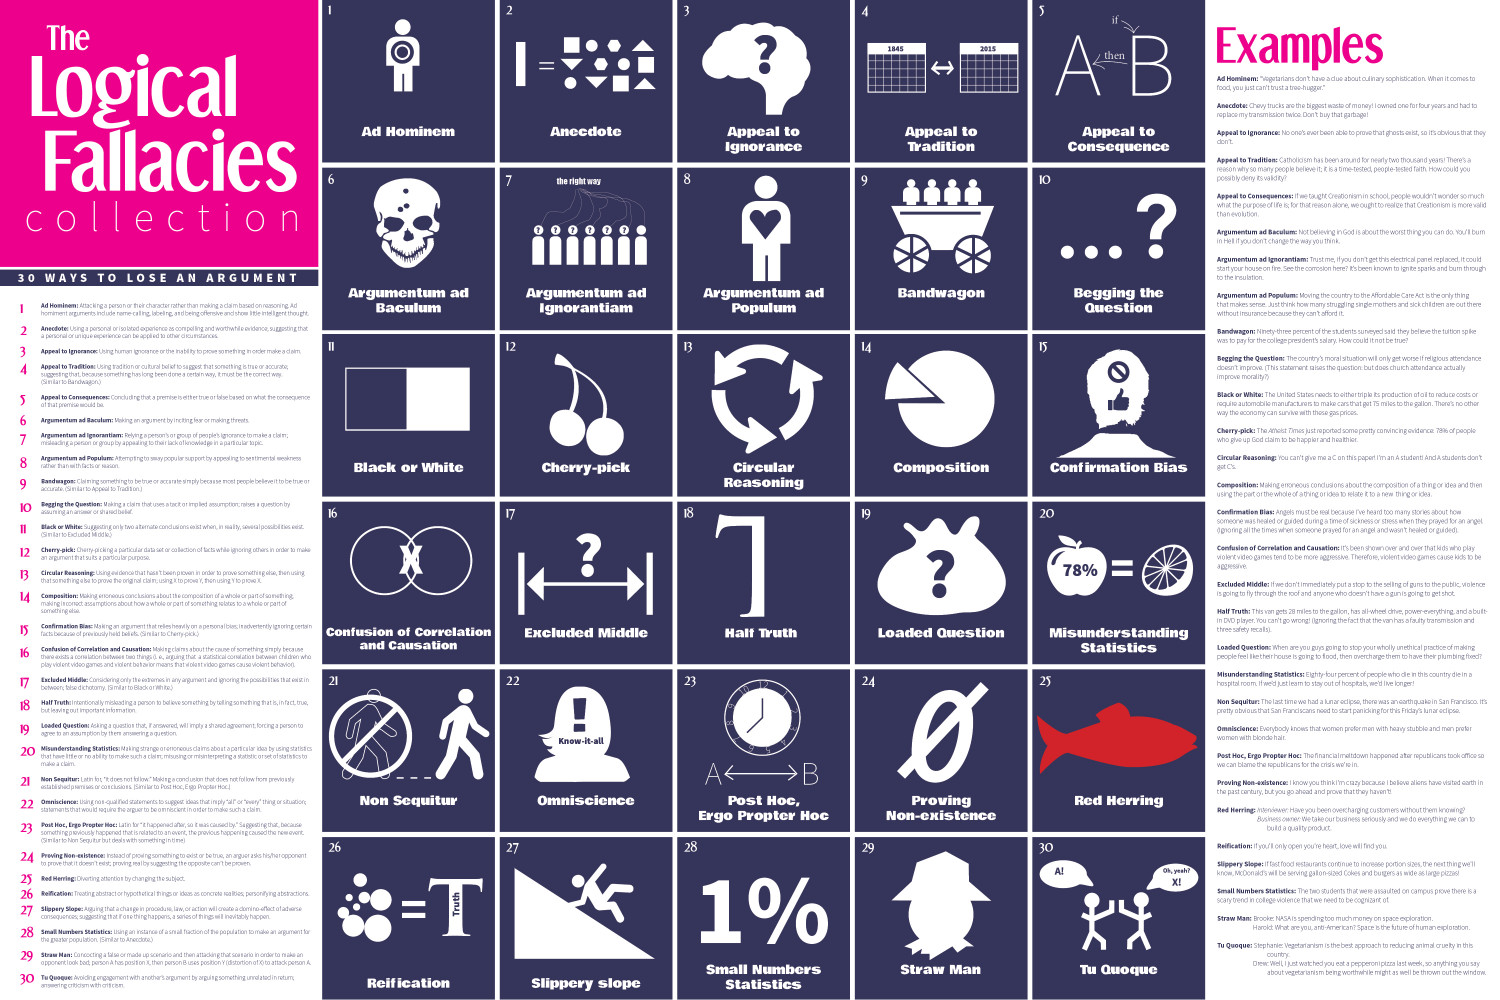 30 Ways to Lose an Argument: The Logical Fallacies Collection Infographic